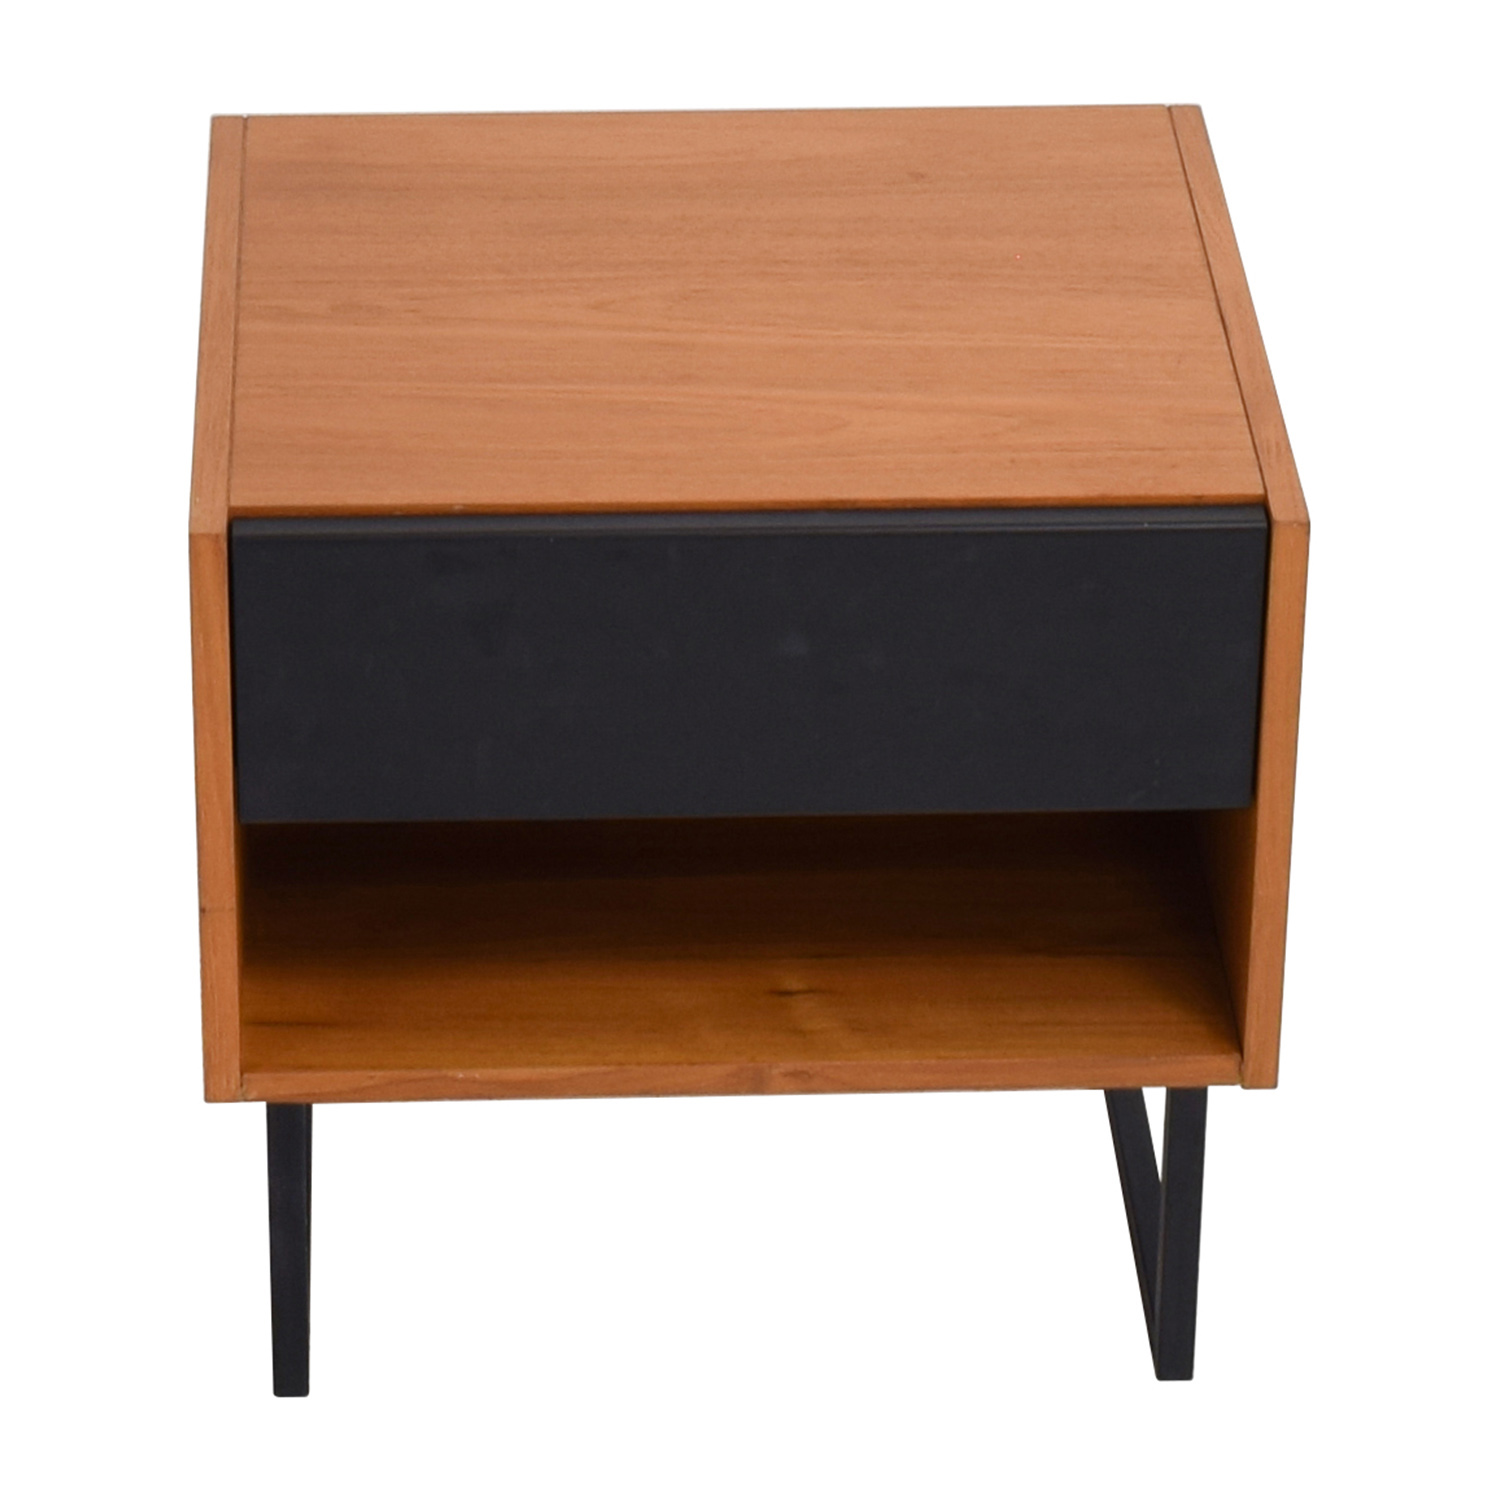 Crate & Barrel Crate & Barrel Brown & Black Night Table Brown and Black